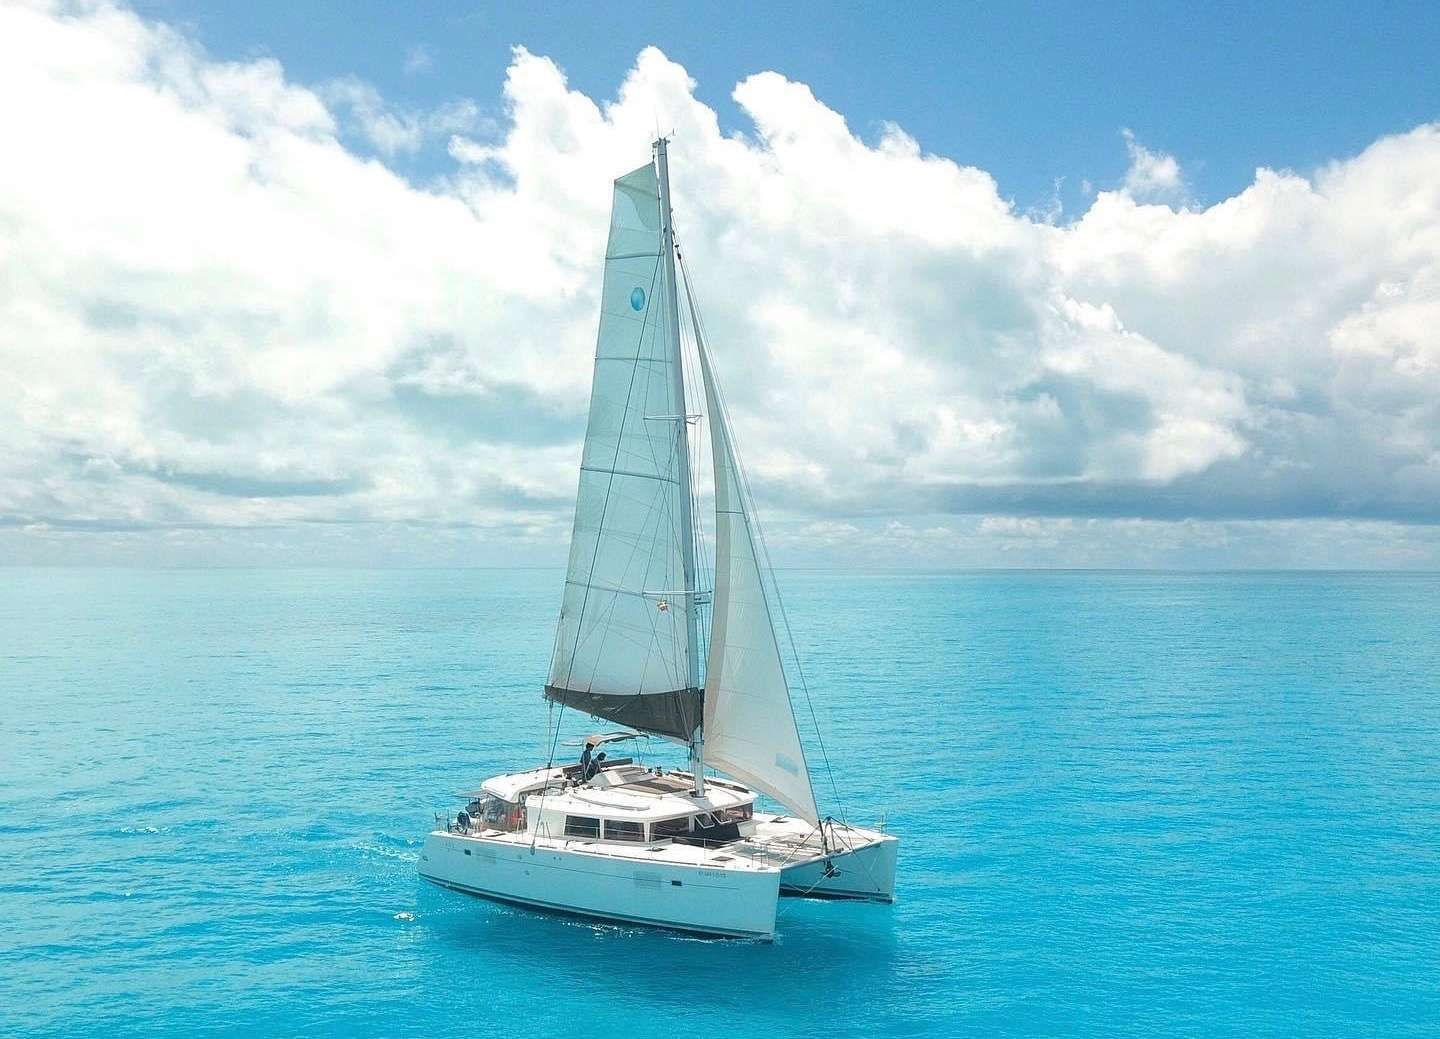 Madrigal V Yacht Charter - Ritzy Charters